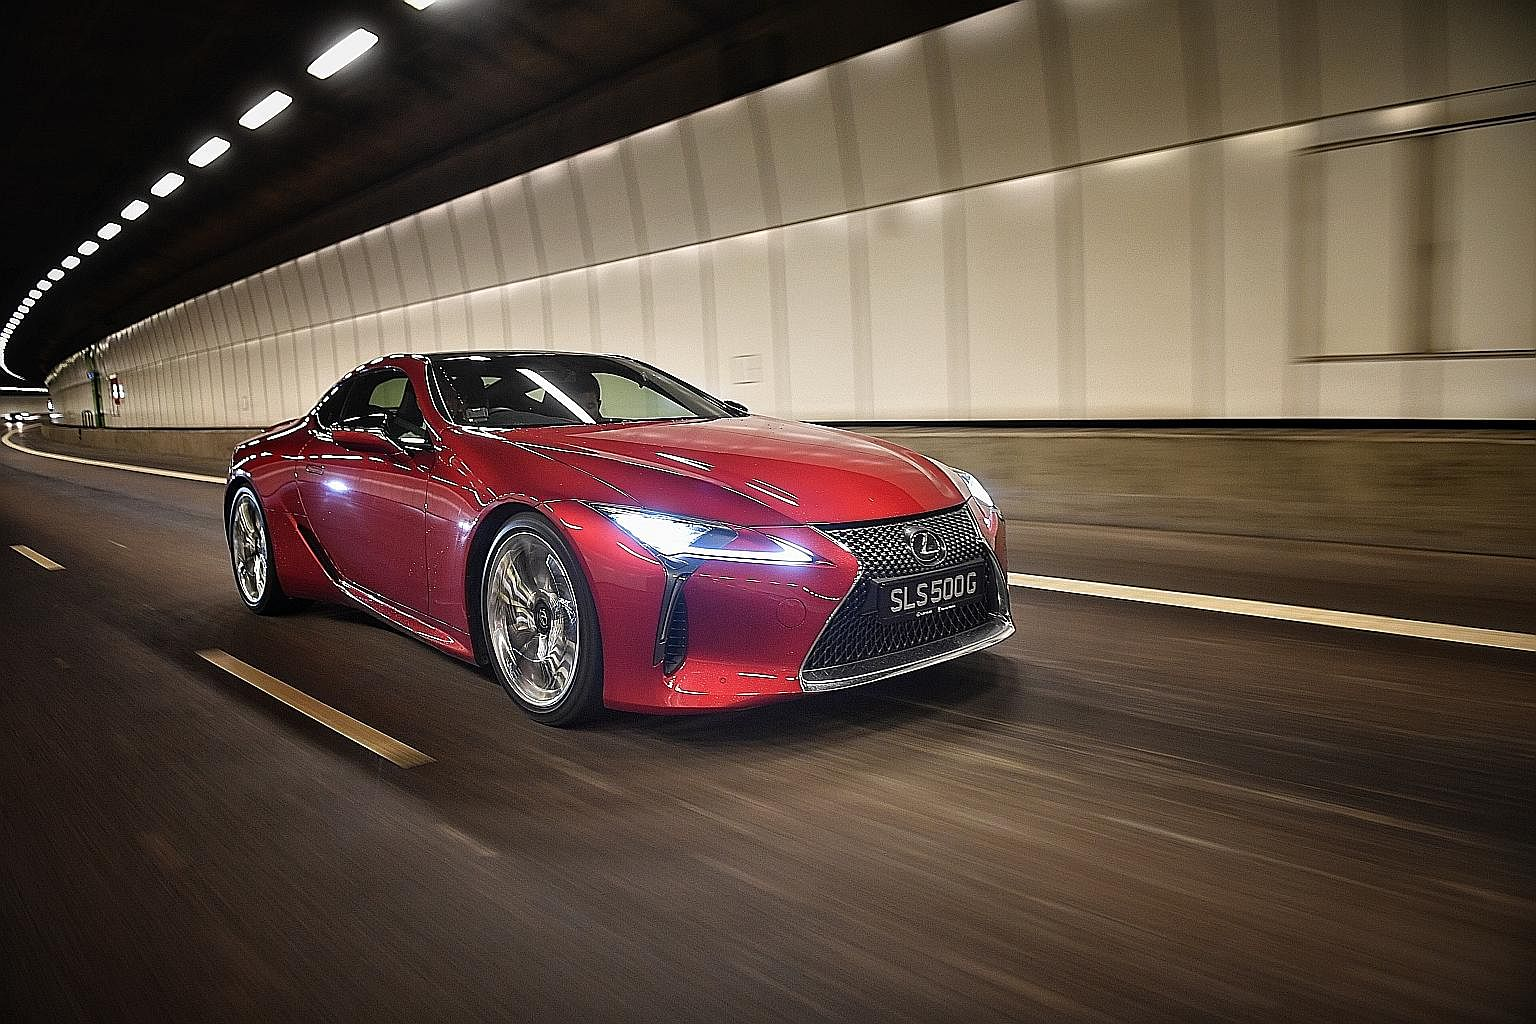 The Lexus LC500 offers classic muscle car grunt with Lexus finesse and sophistication.